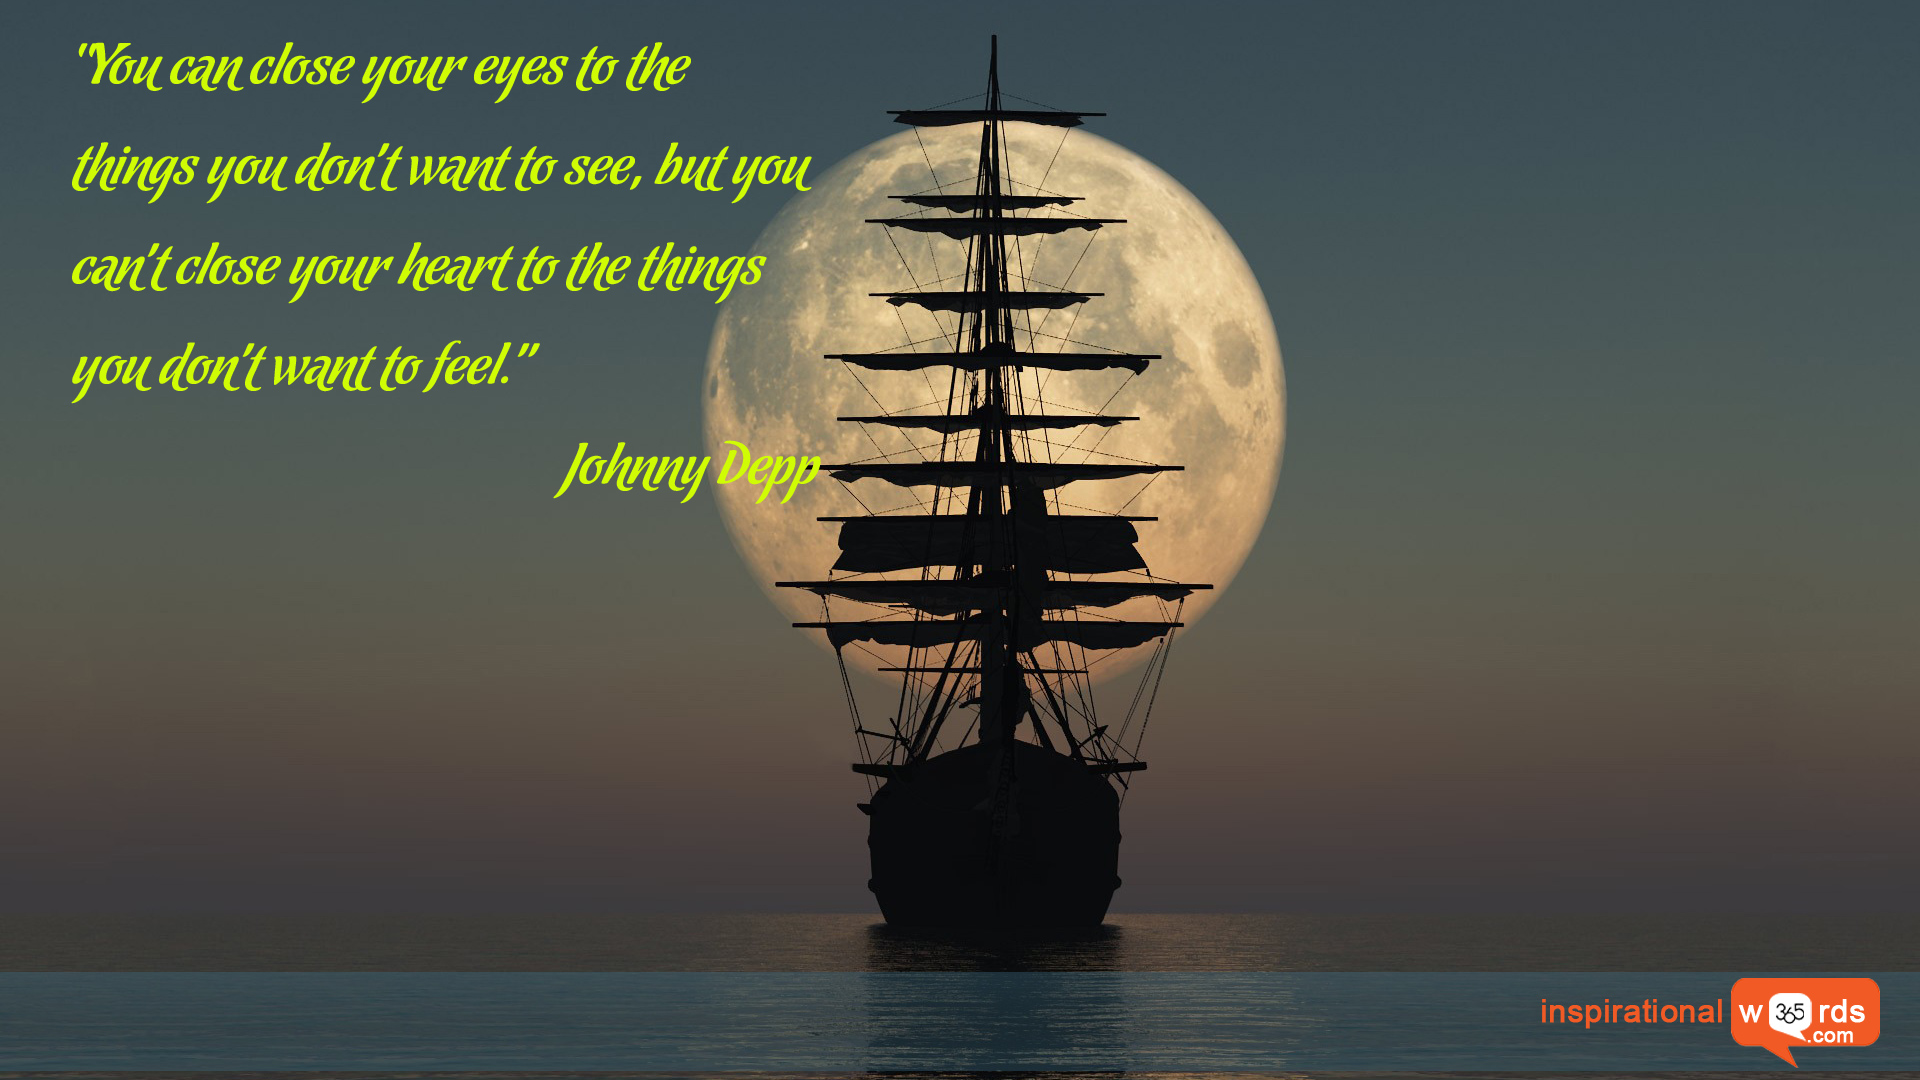 Inspirational Wallpaper Quote by Johnny Depp